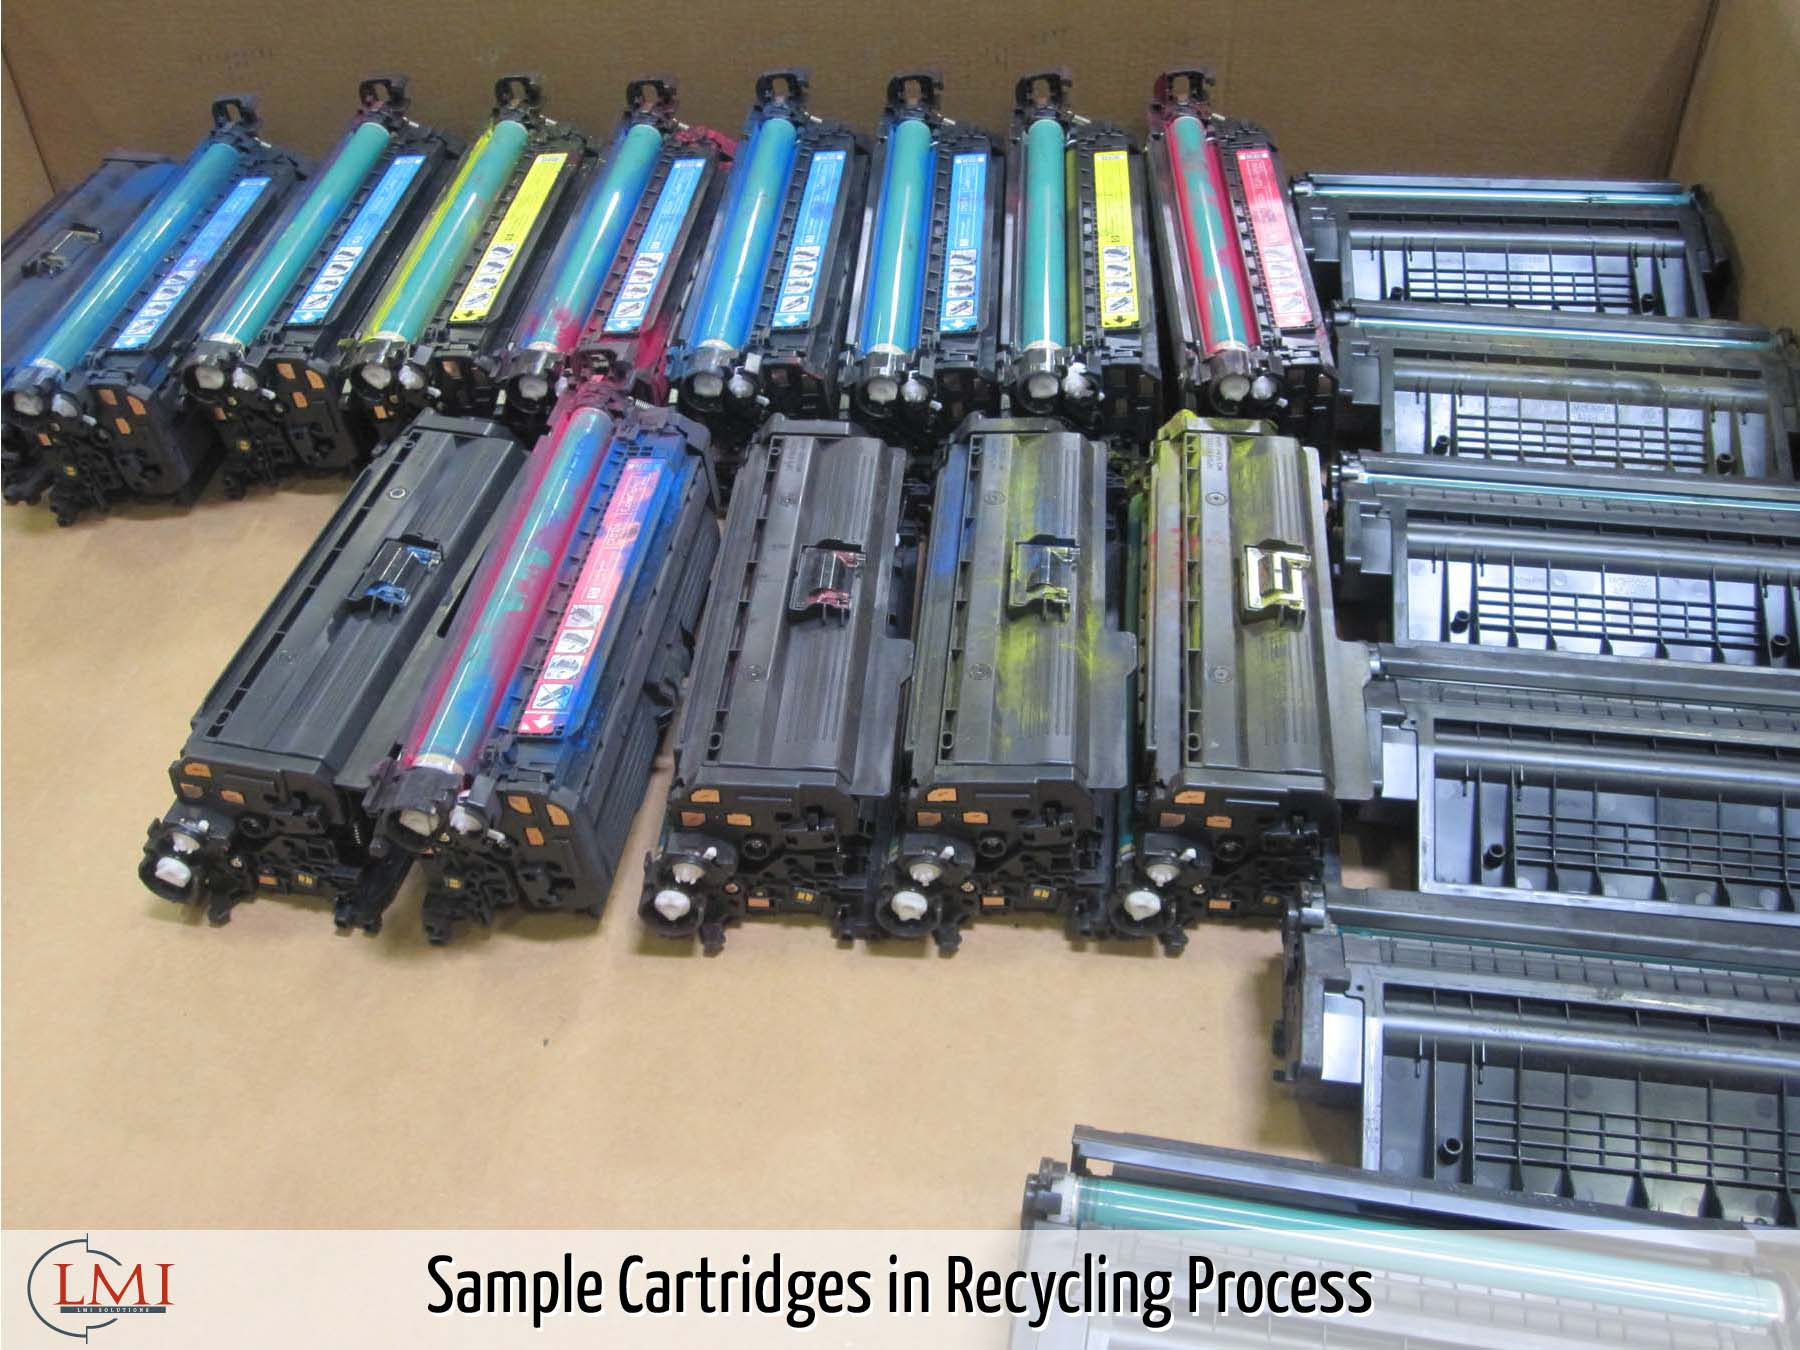 Sample Cartridges in Recycling Process